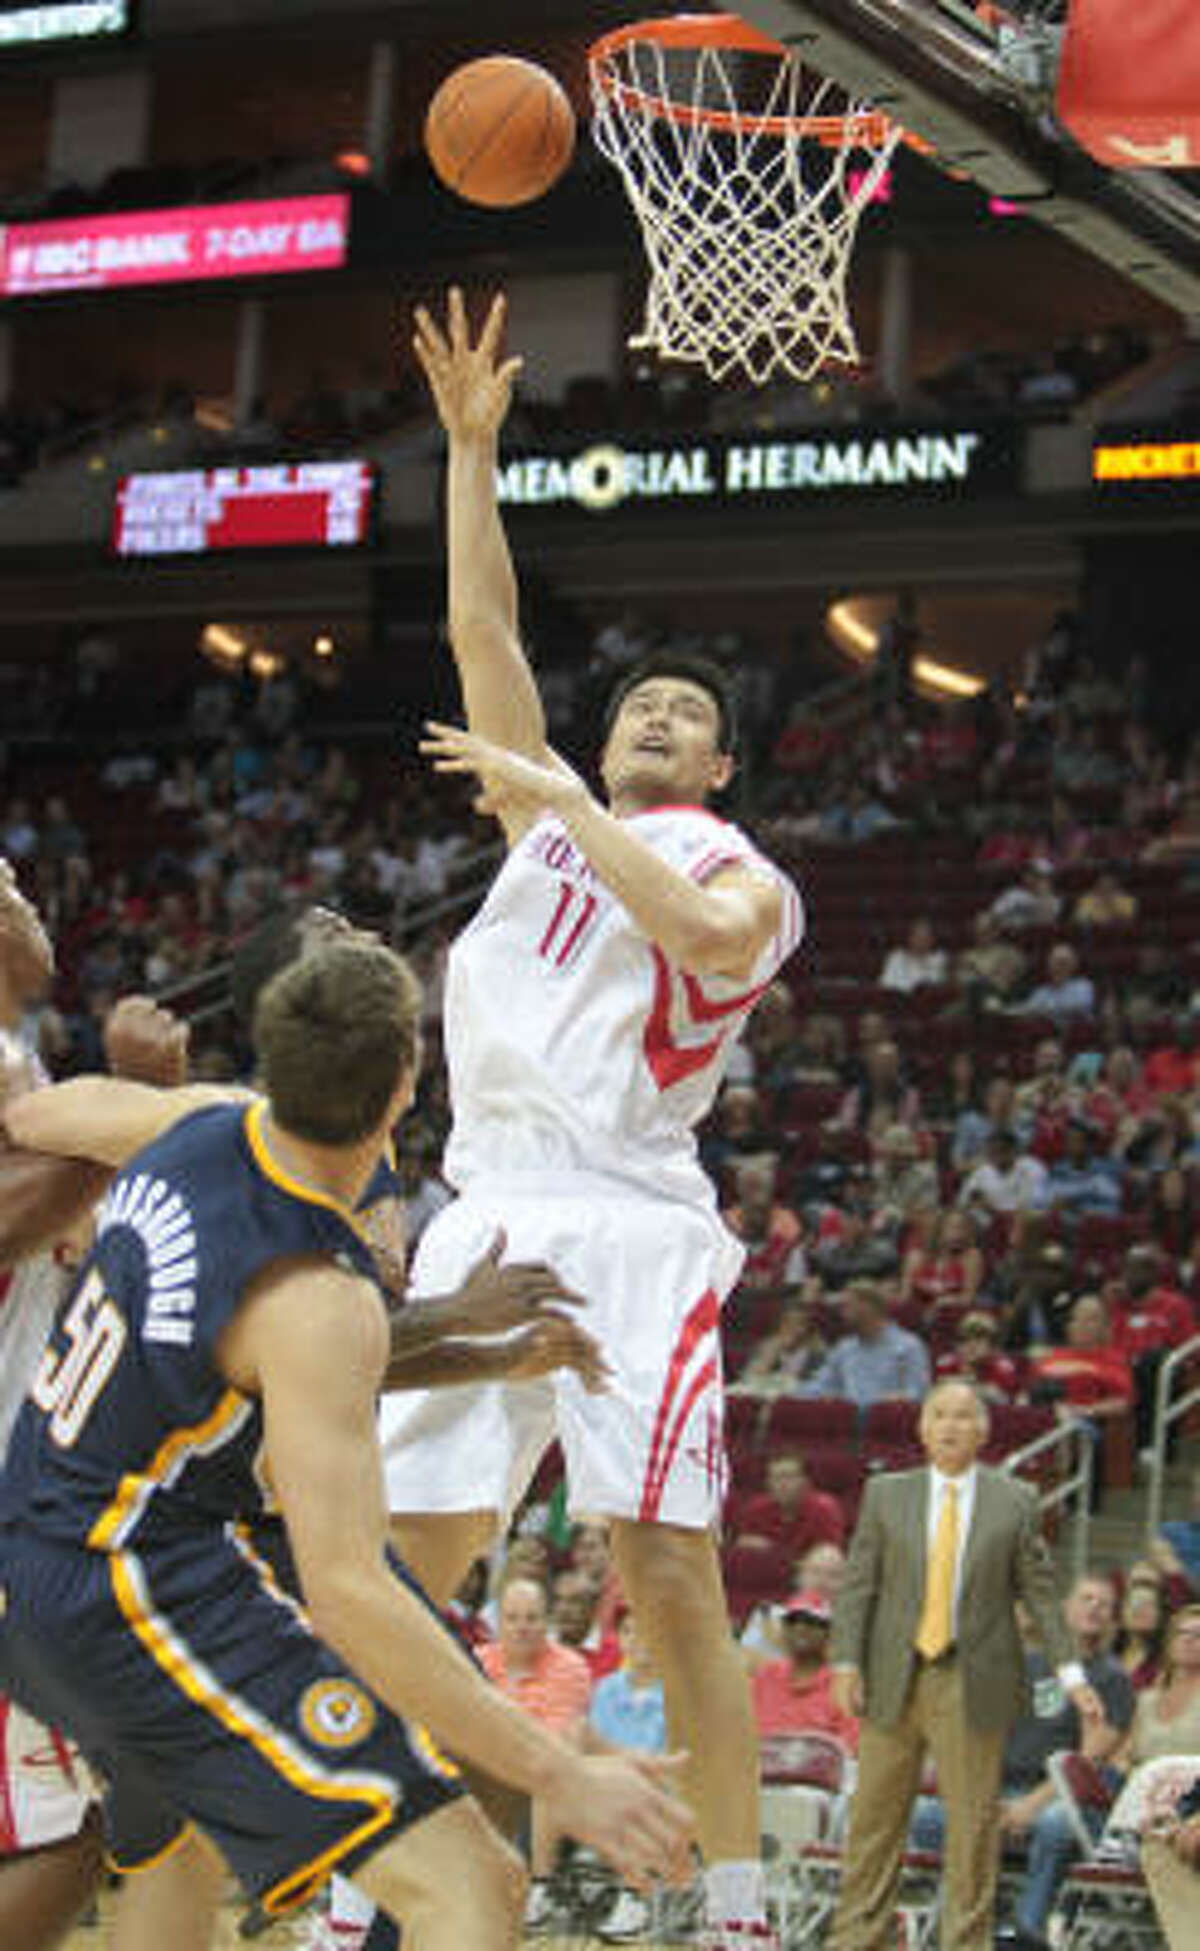 Yao Ming scored 10 points, grabbed four boards and had two blocks in 12 minutes of action on Saturday night.